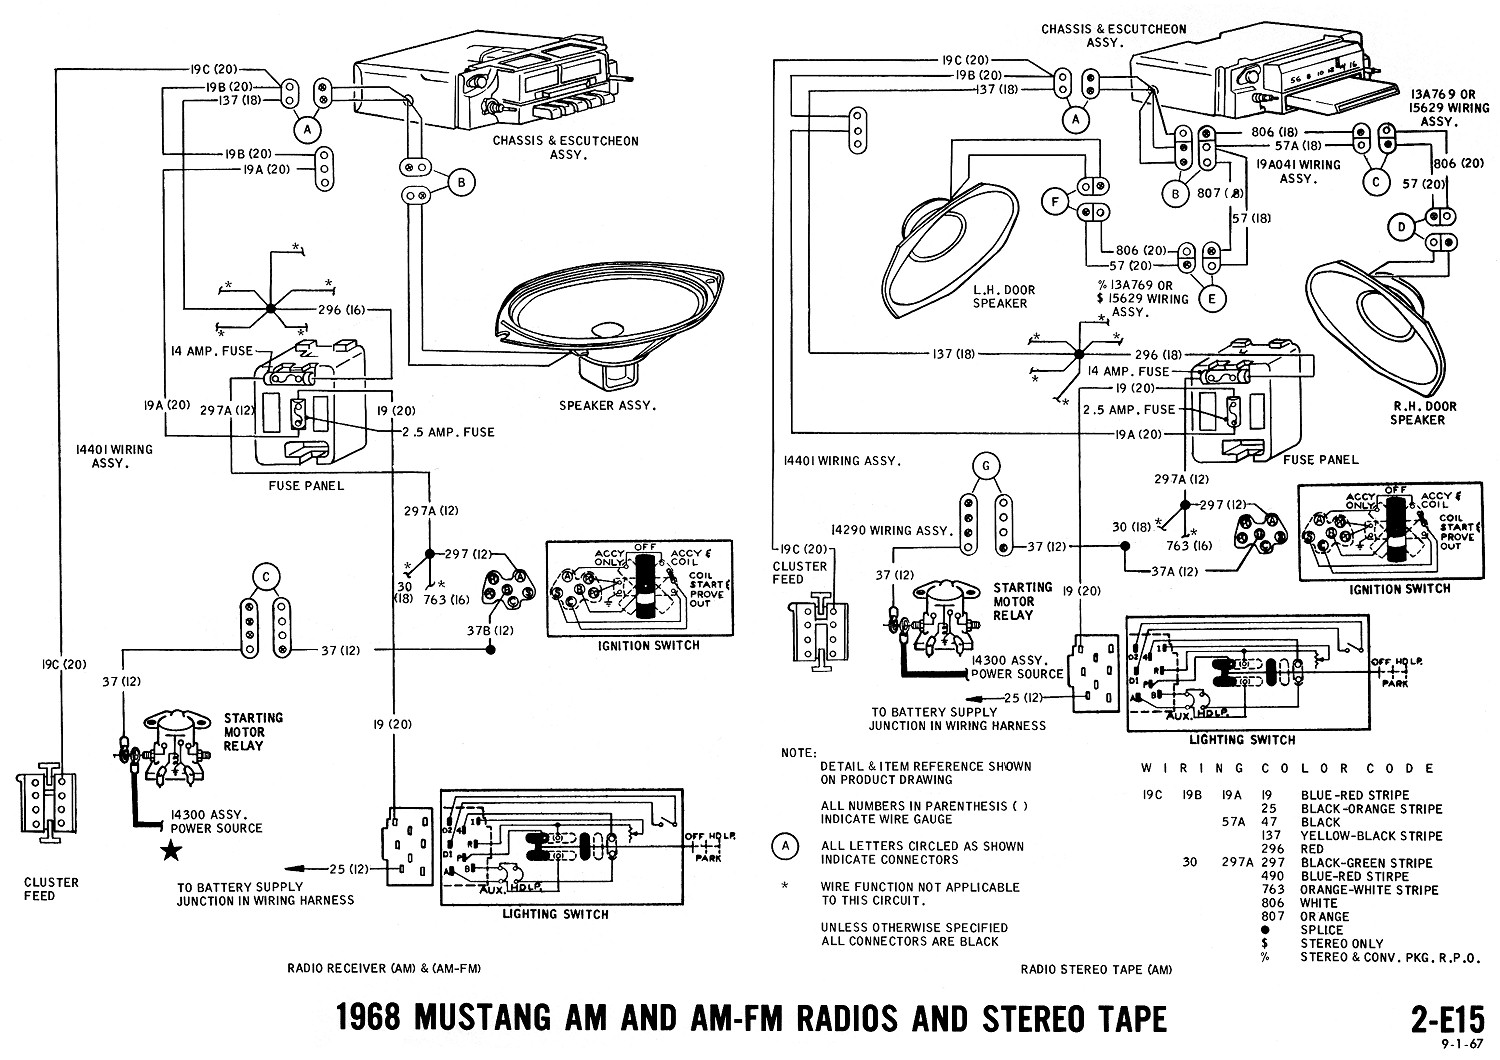 E15 1968 mustang wiring diagrams evolving software 2007 mustang gt stereo wiring diagram at edmiracle.co